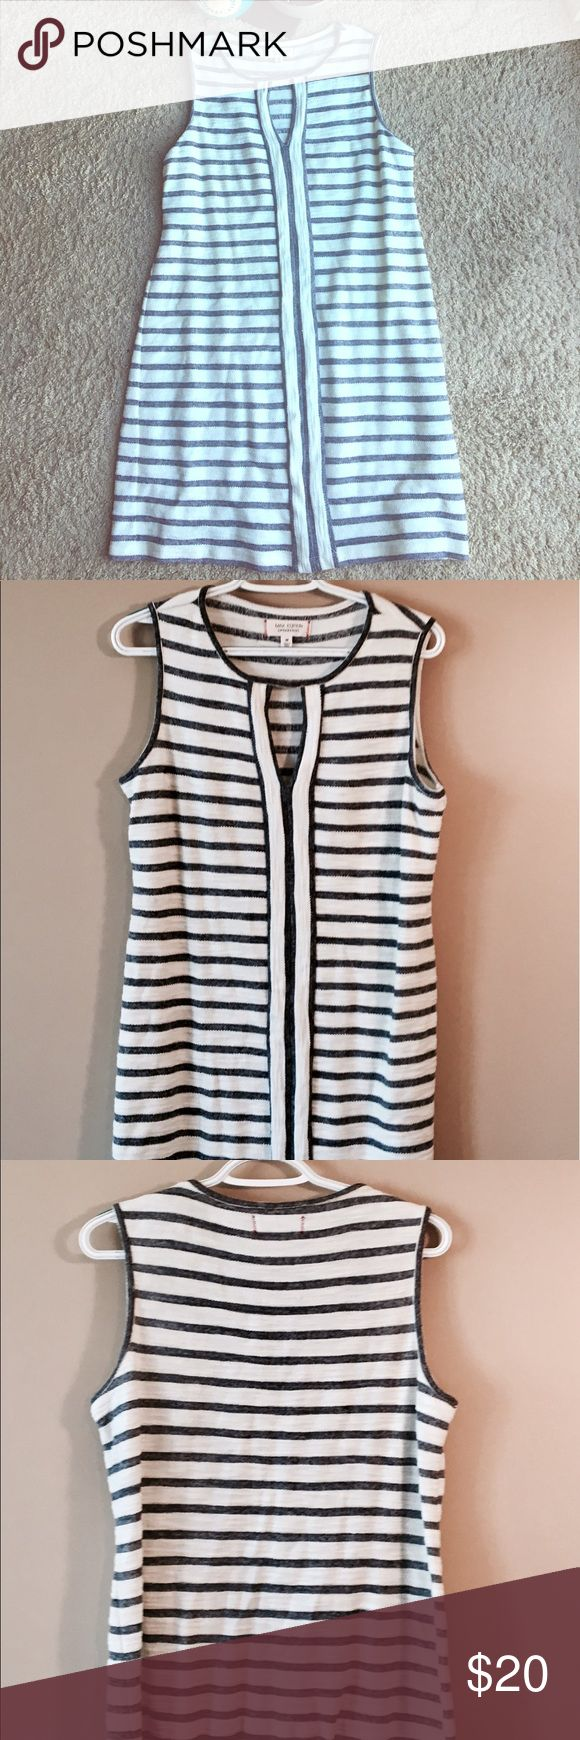 """Max Edition [Weekend] Blue & White Stripe Dress Max Edition [Weekend] Blue & White Stripe tunic Dress. Casual and cute dress with keyhole opening in the front. Relaxed fit. Perfect for the beach. Worn once. In excellent condition. Approx Measurements: Armpit to Armpit 19.4"""", Length 34.5"""". Dresses Midi"""